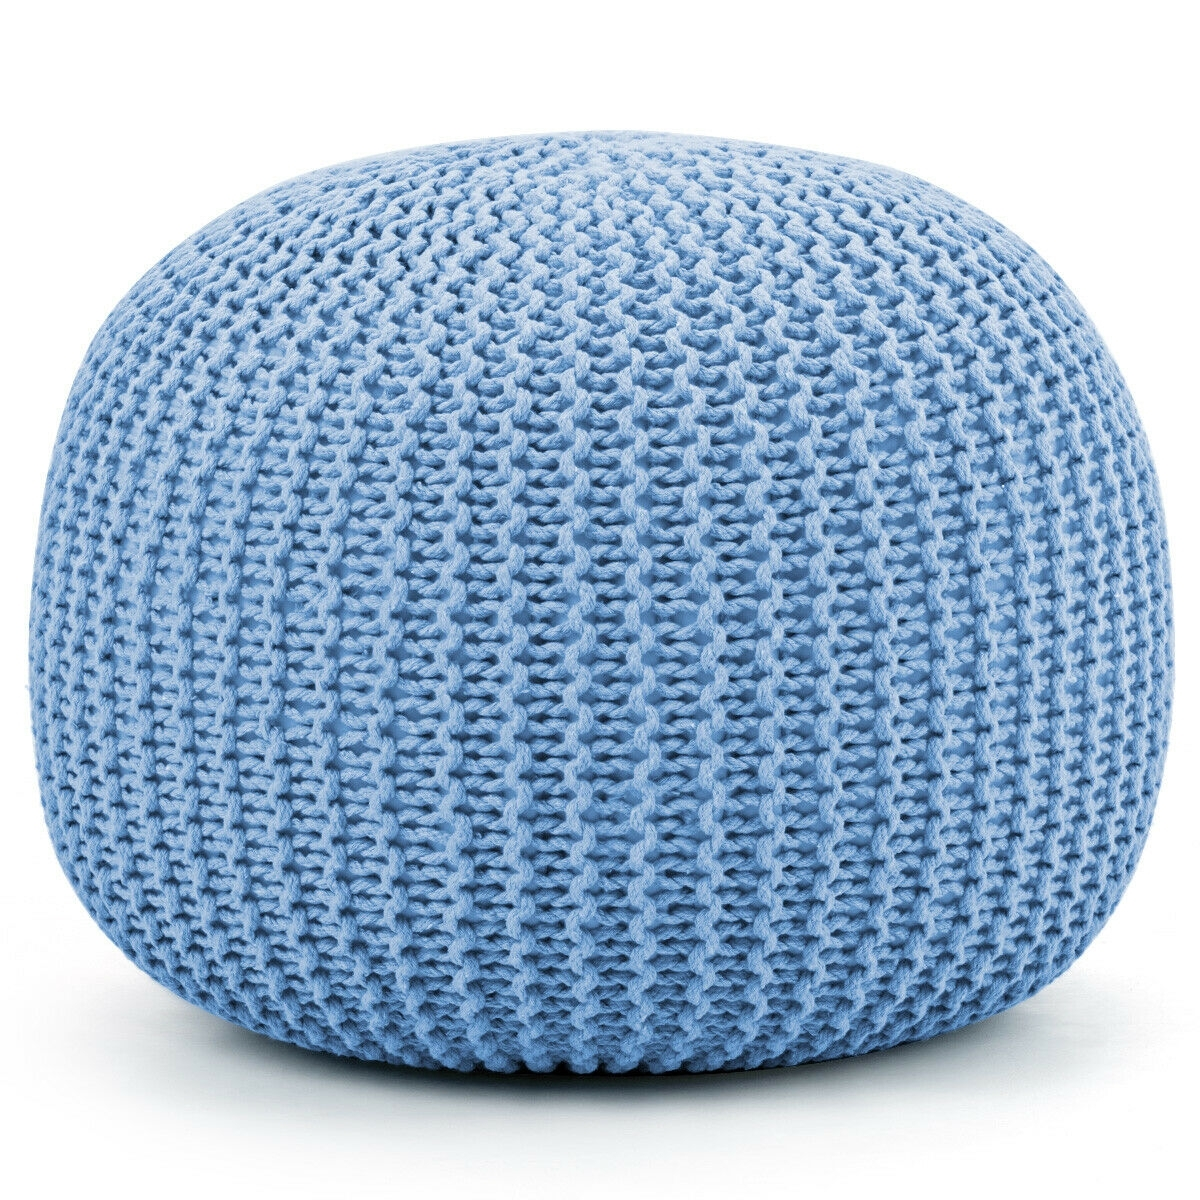 100% Cotton Hand Knitted Pouf Floor Seating Ottoman-Blue